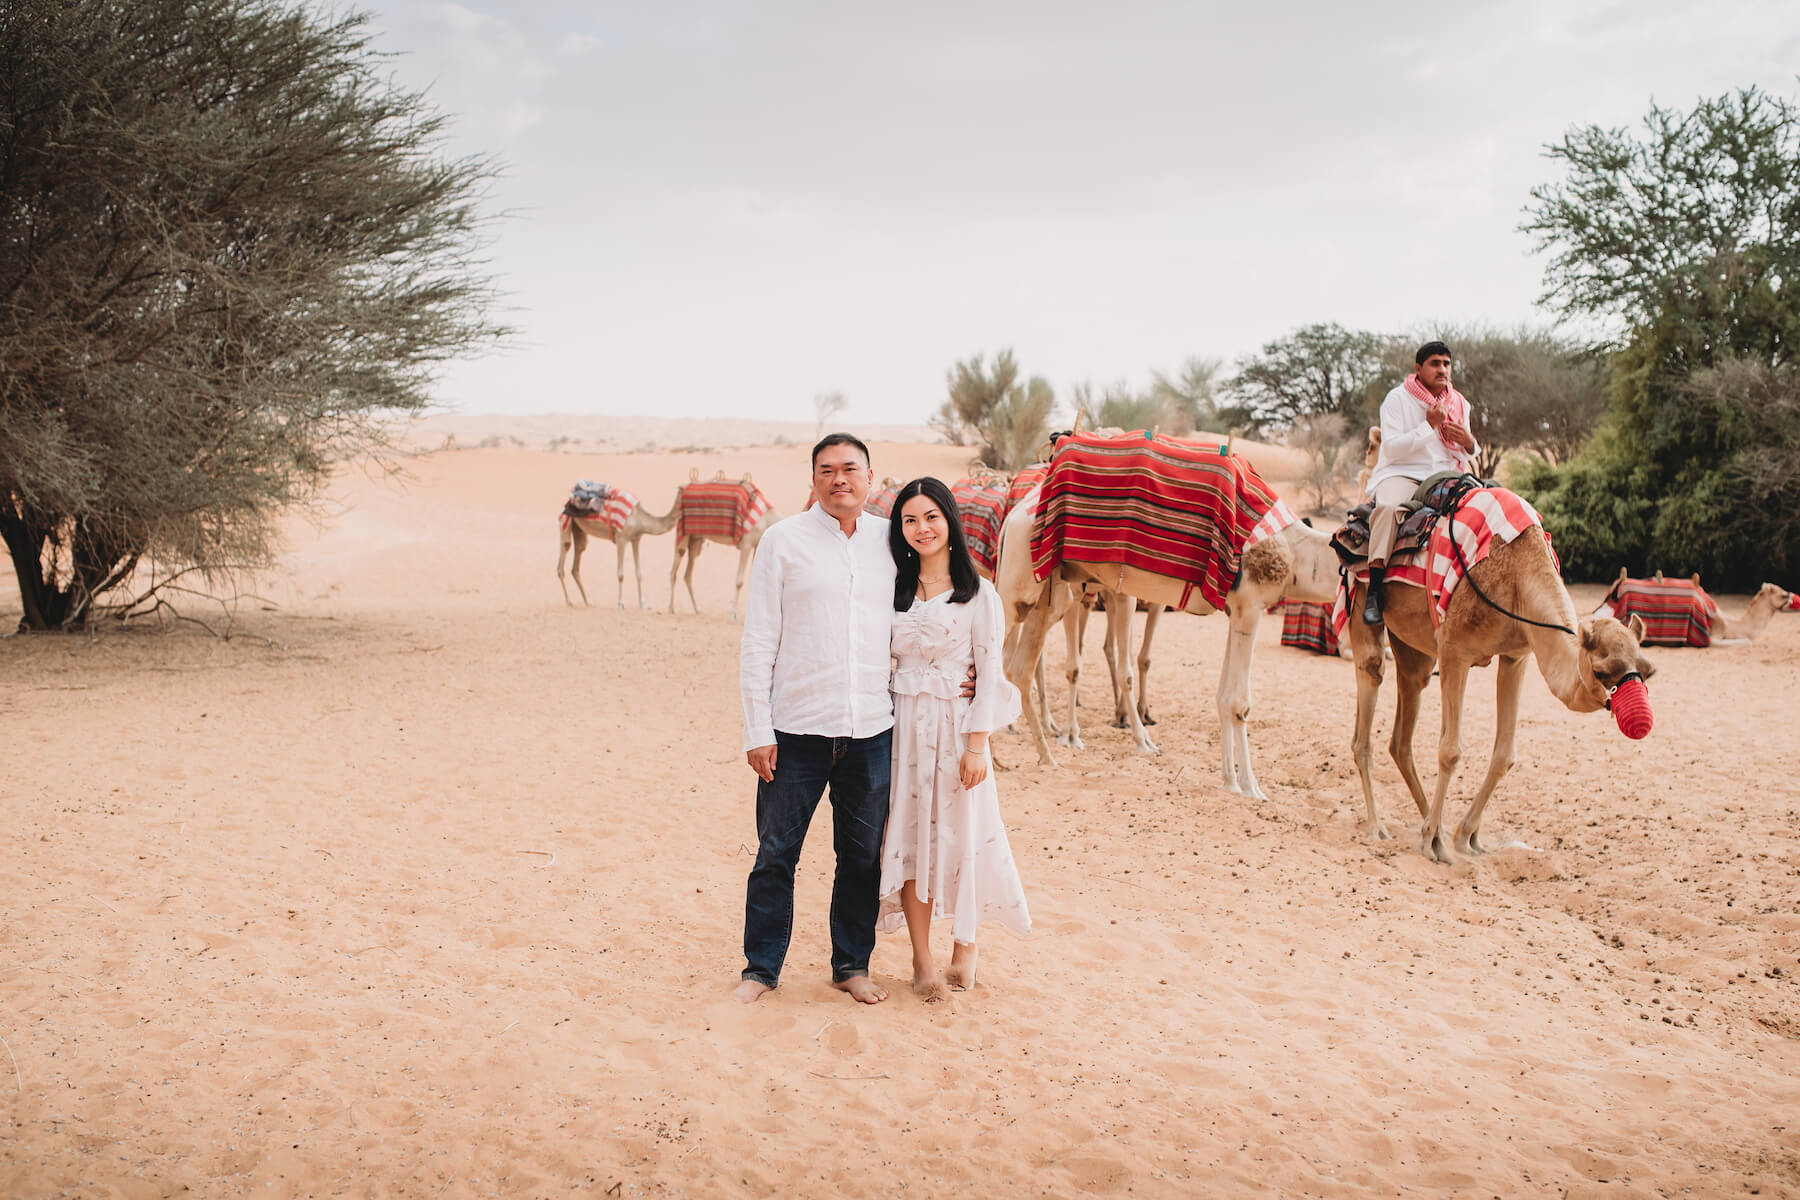 A couple with camels and tour guide in the Dubai desert in Dubai, United Arab Emirates